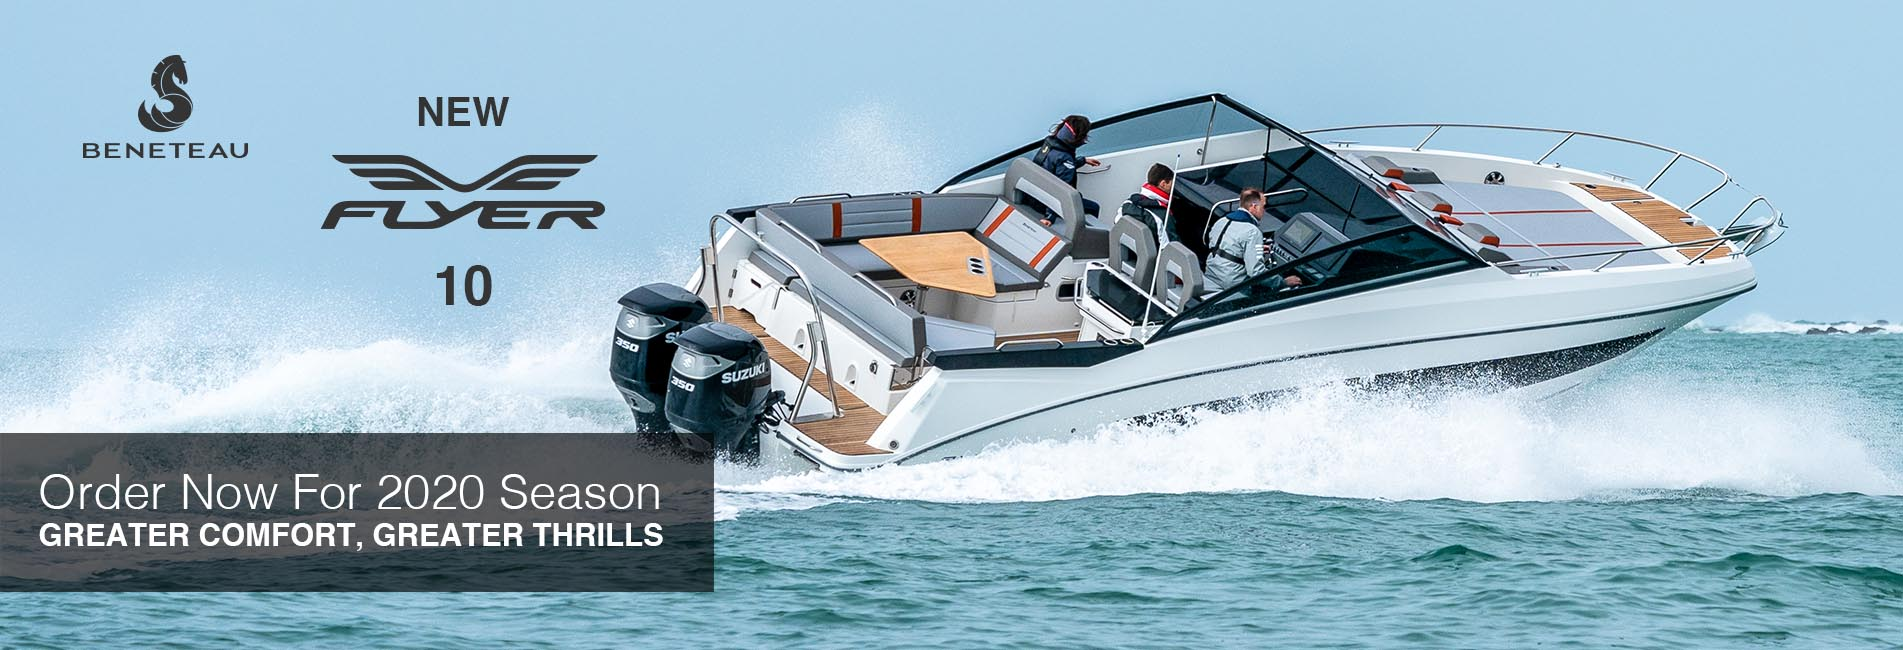 New Beneteau Flyer 10 2019 Cannes Southampton